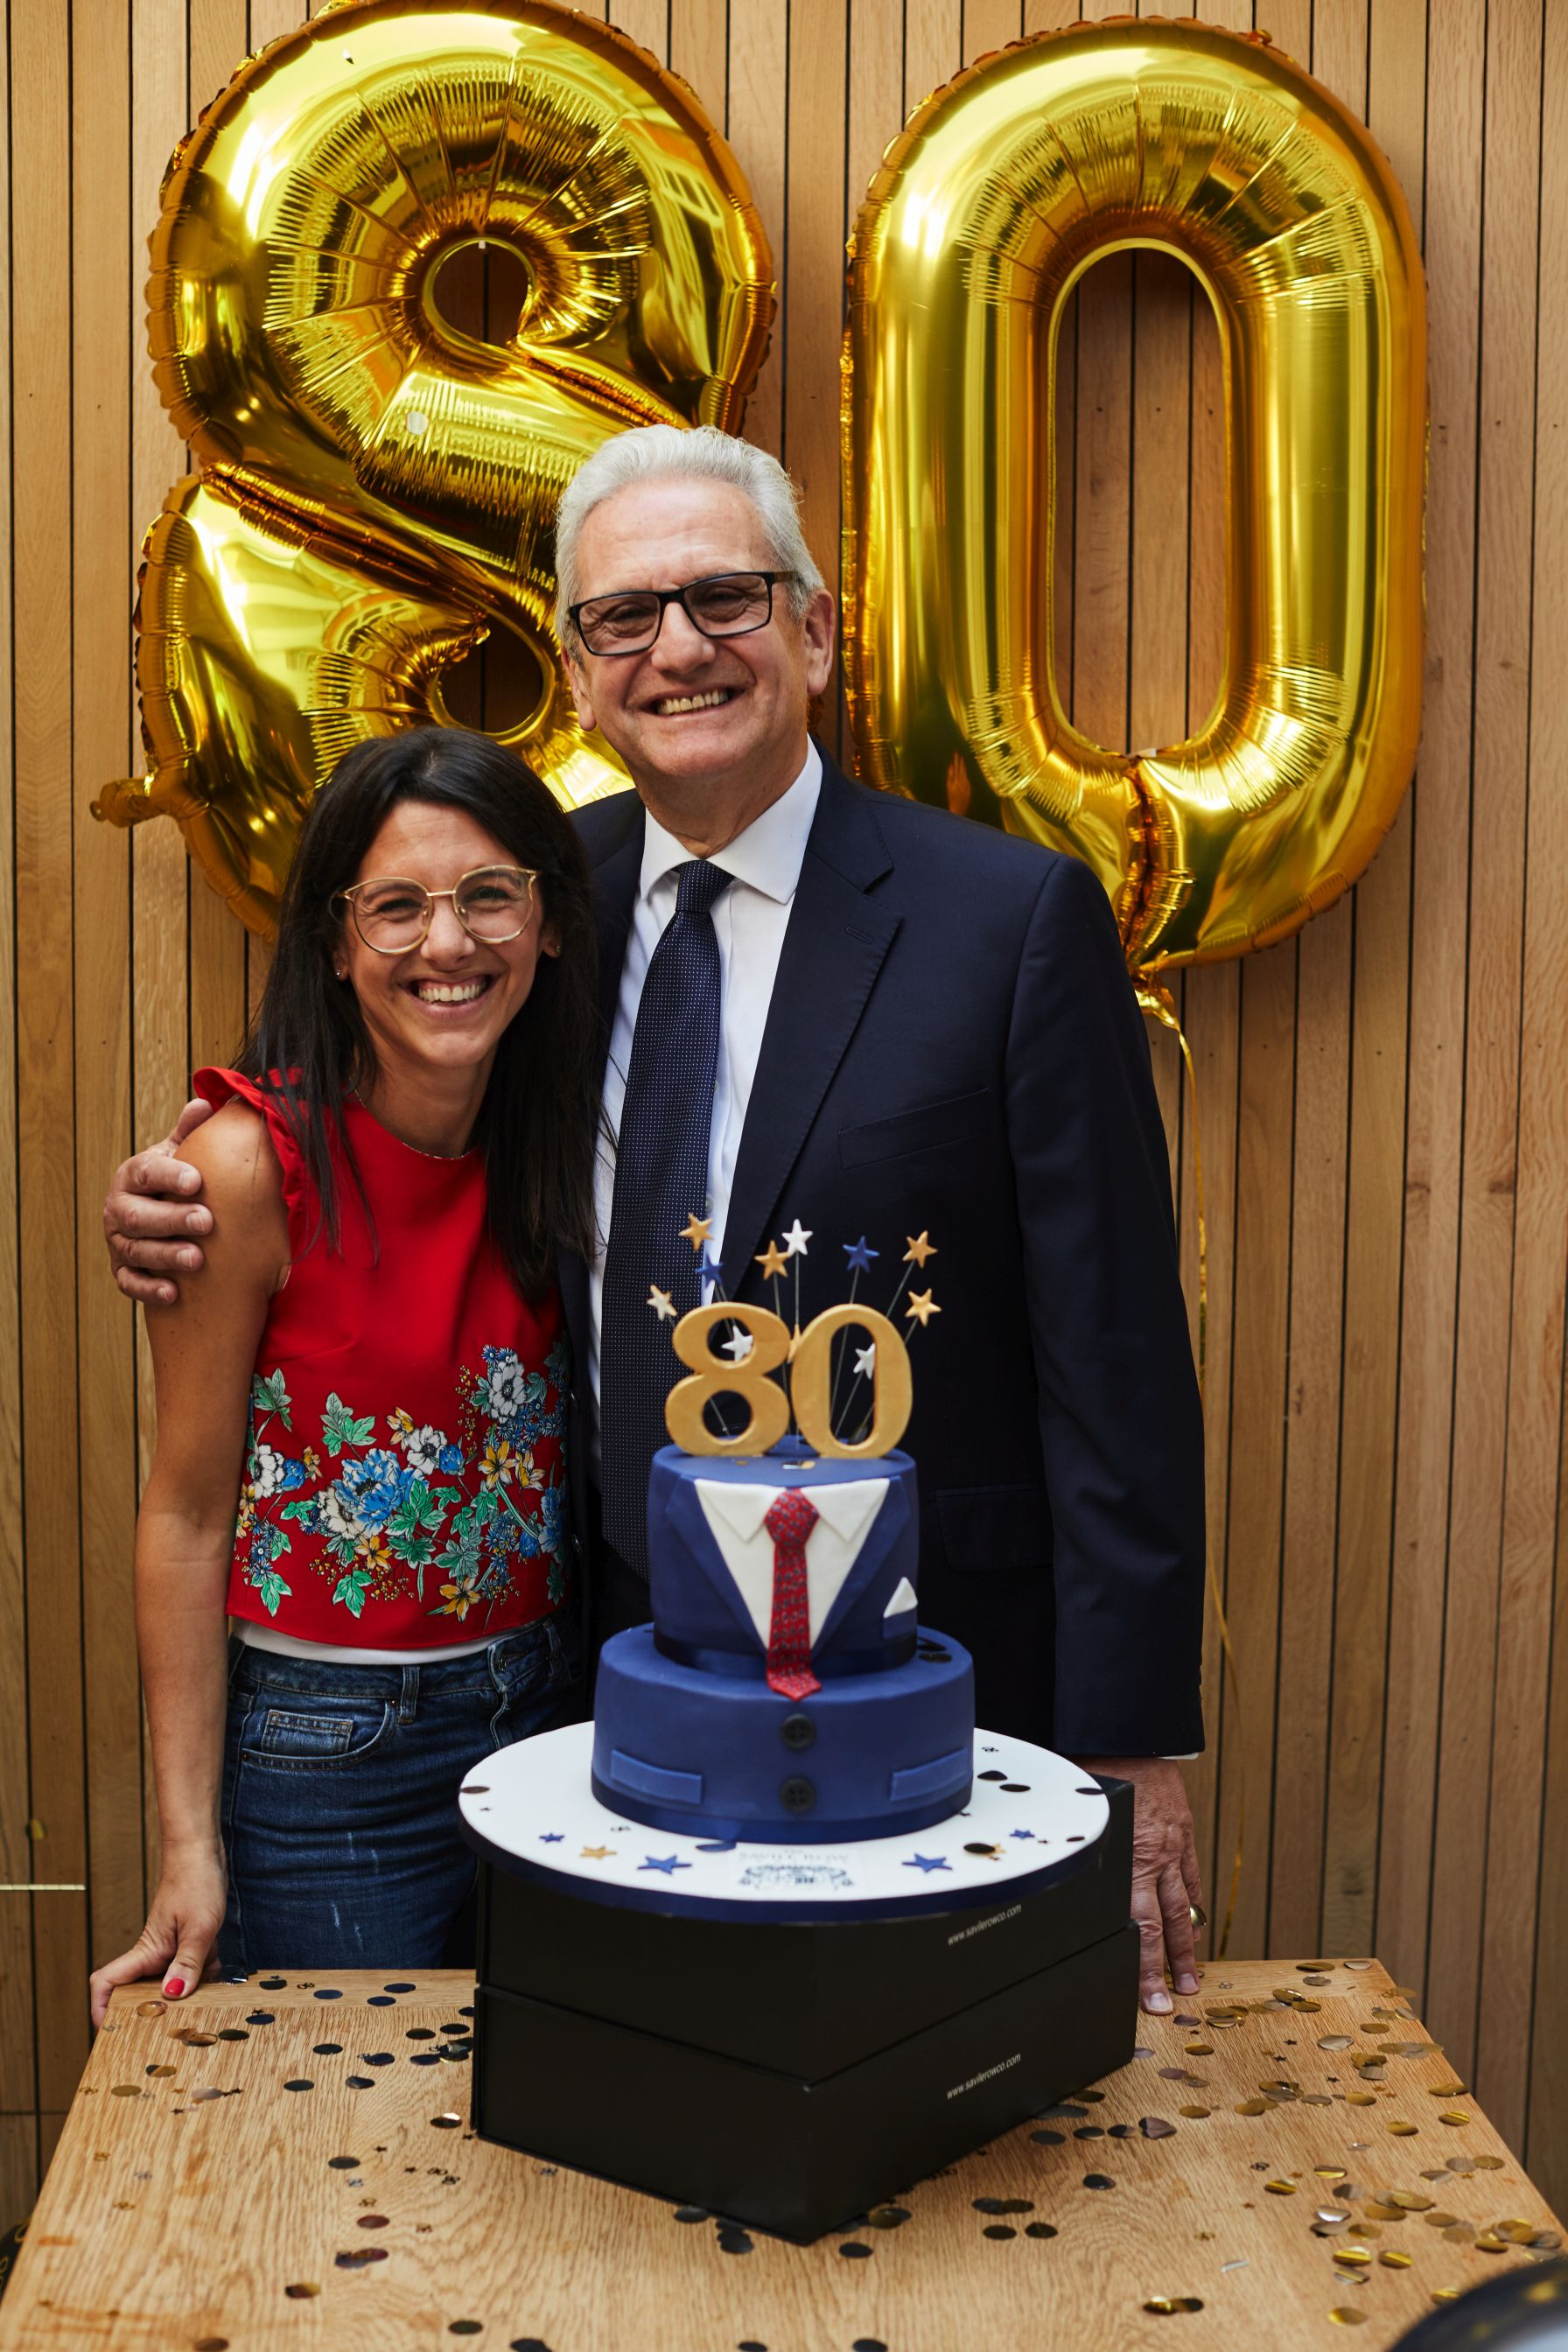 A woman and man stand together side by side smiling widely. There are two big '8' and '0' balloons behind them and a cake decorated like a suit with an '80' on top.